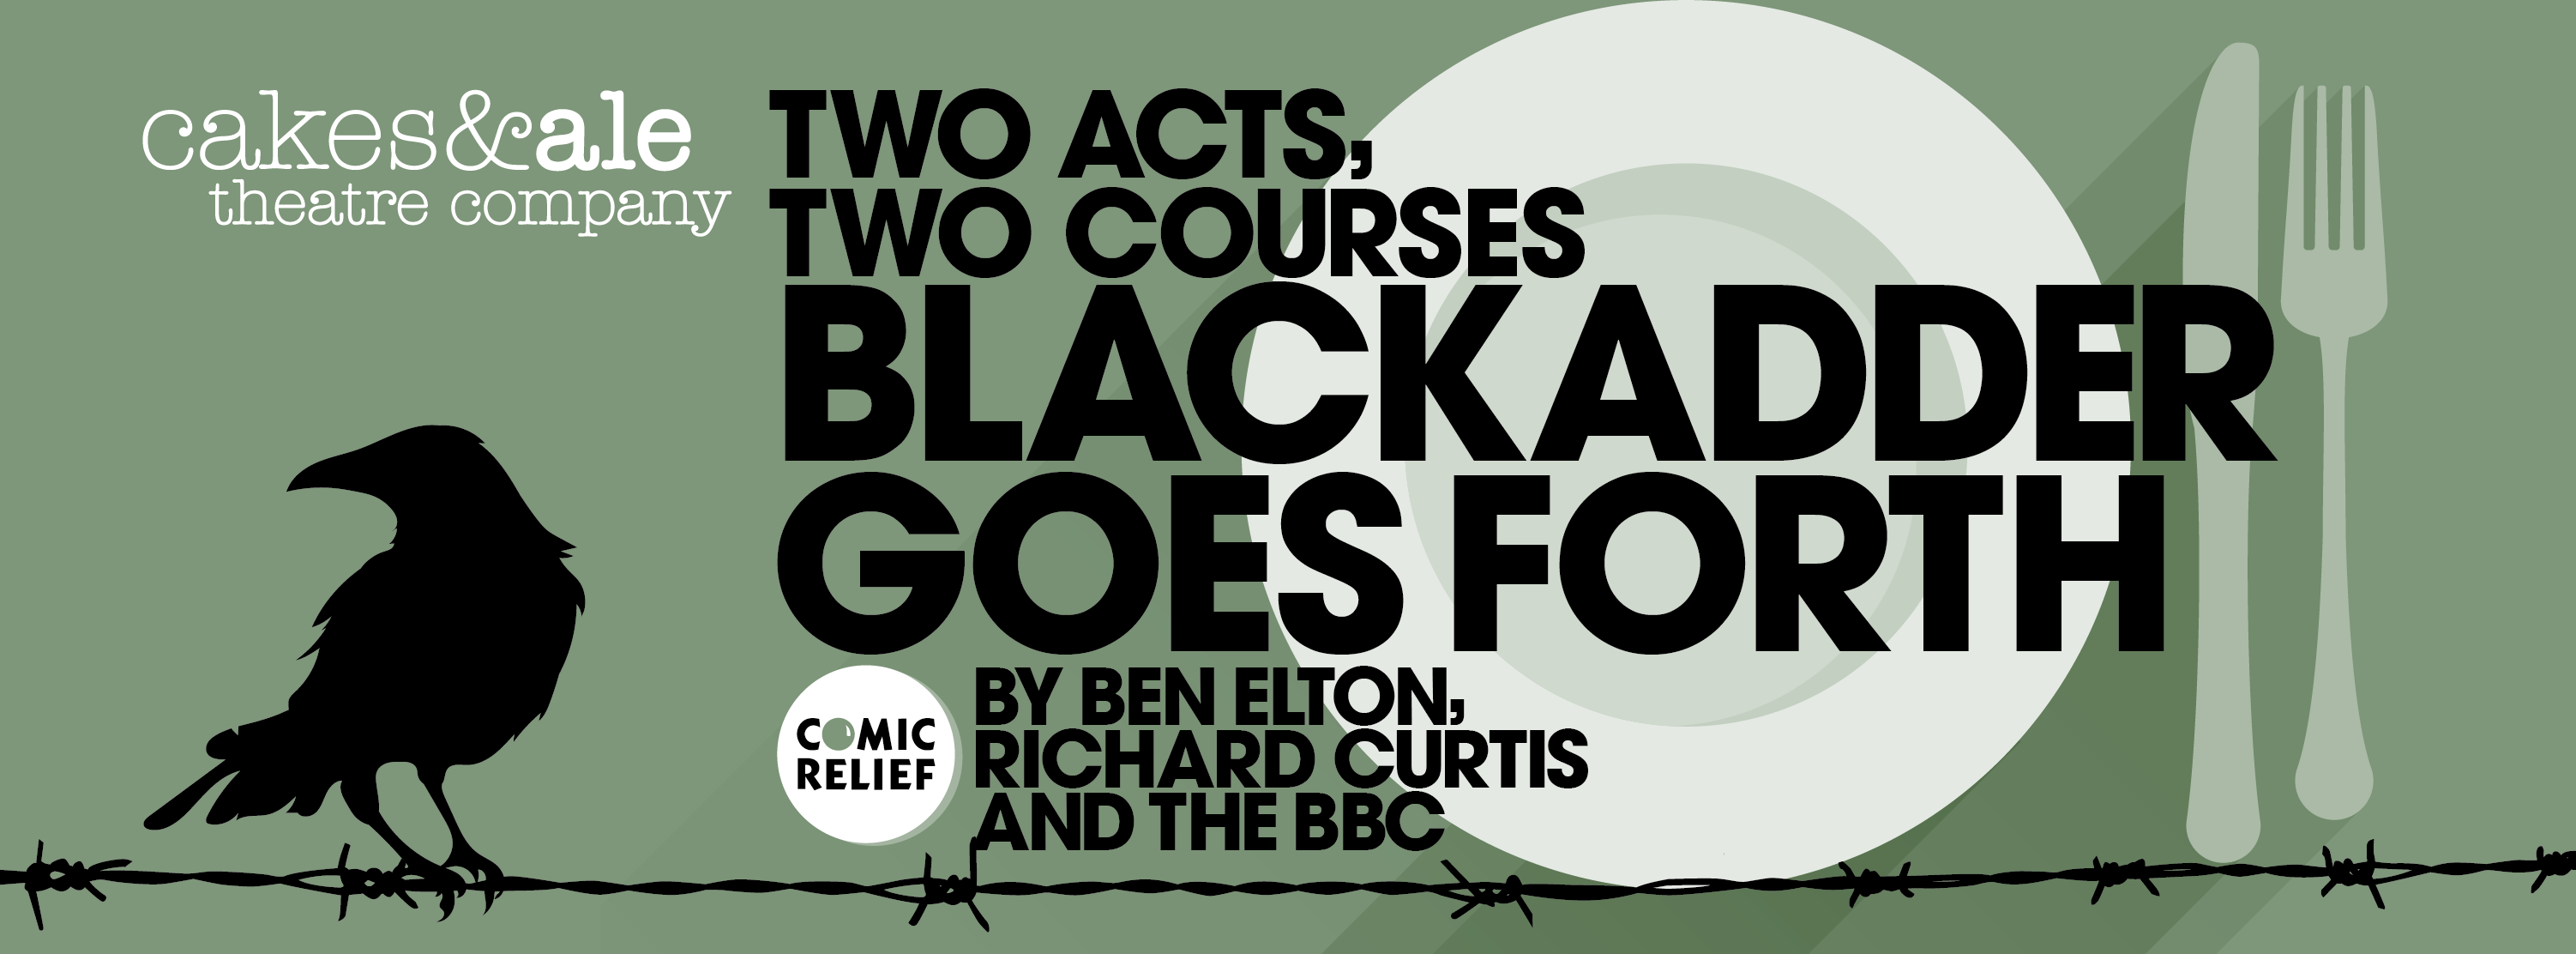 Two Acts, Two Courses - Blackadder goes forth